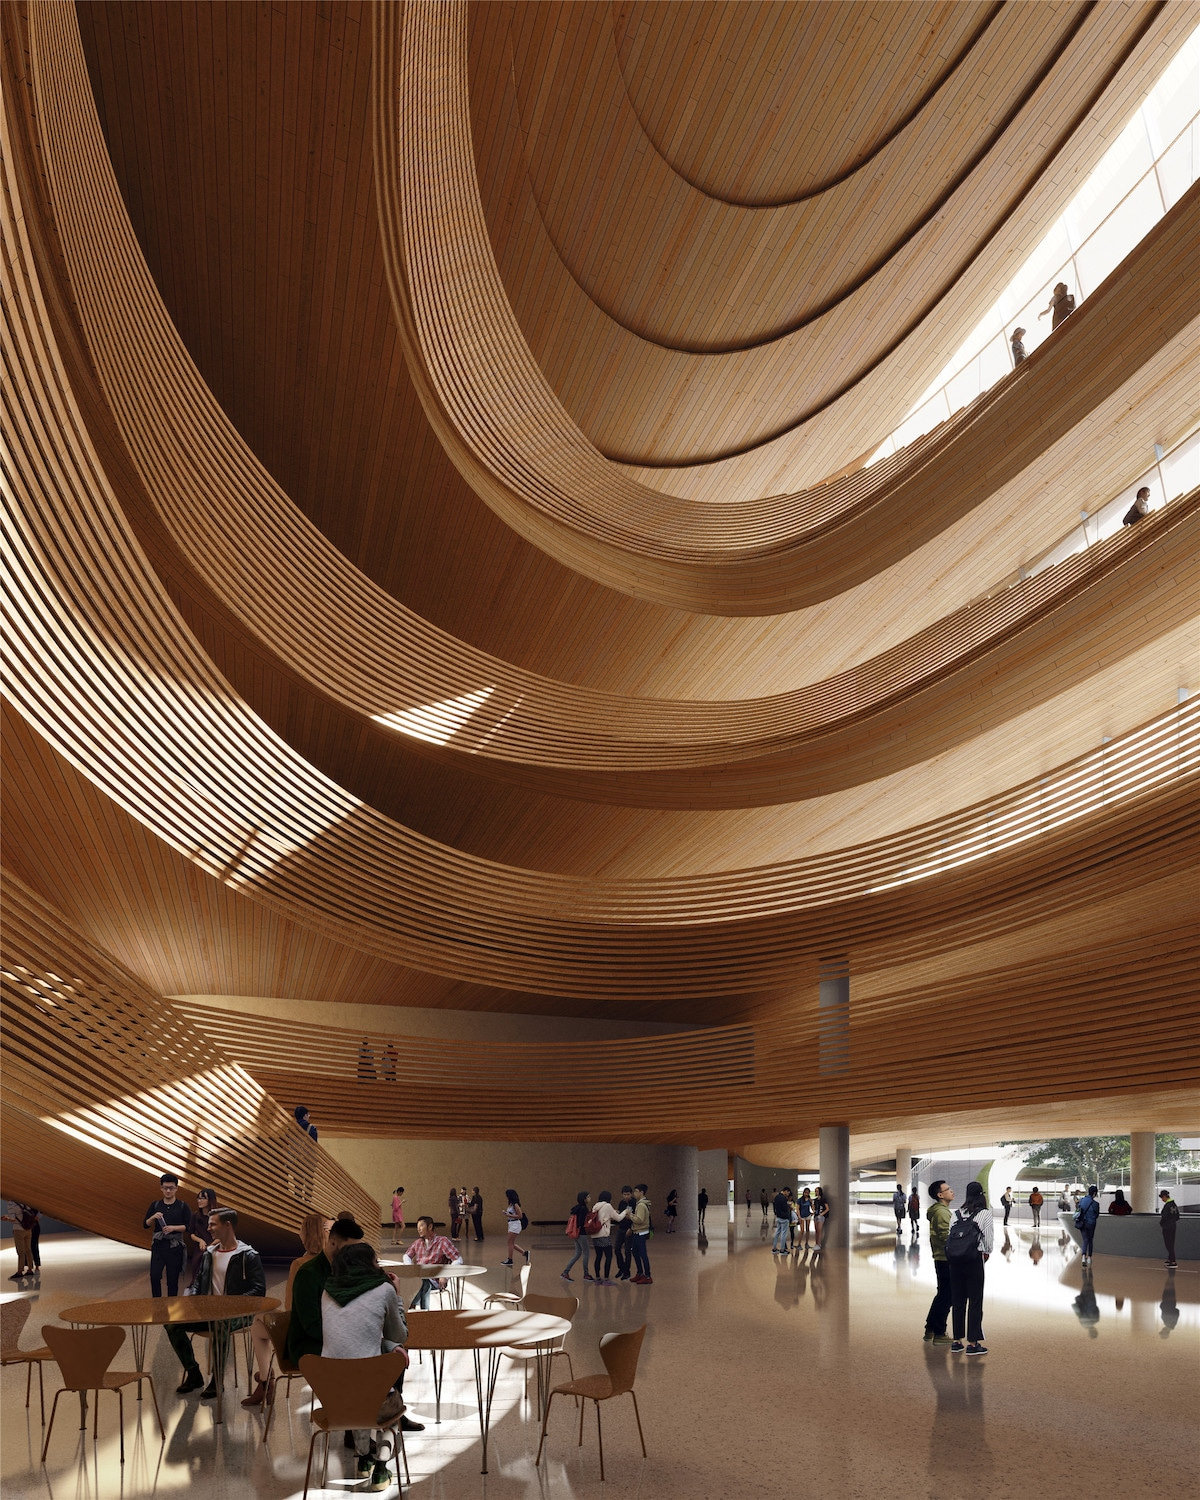 Interior View of MAD Architects' Jiaxing Civic Center